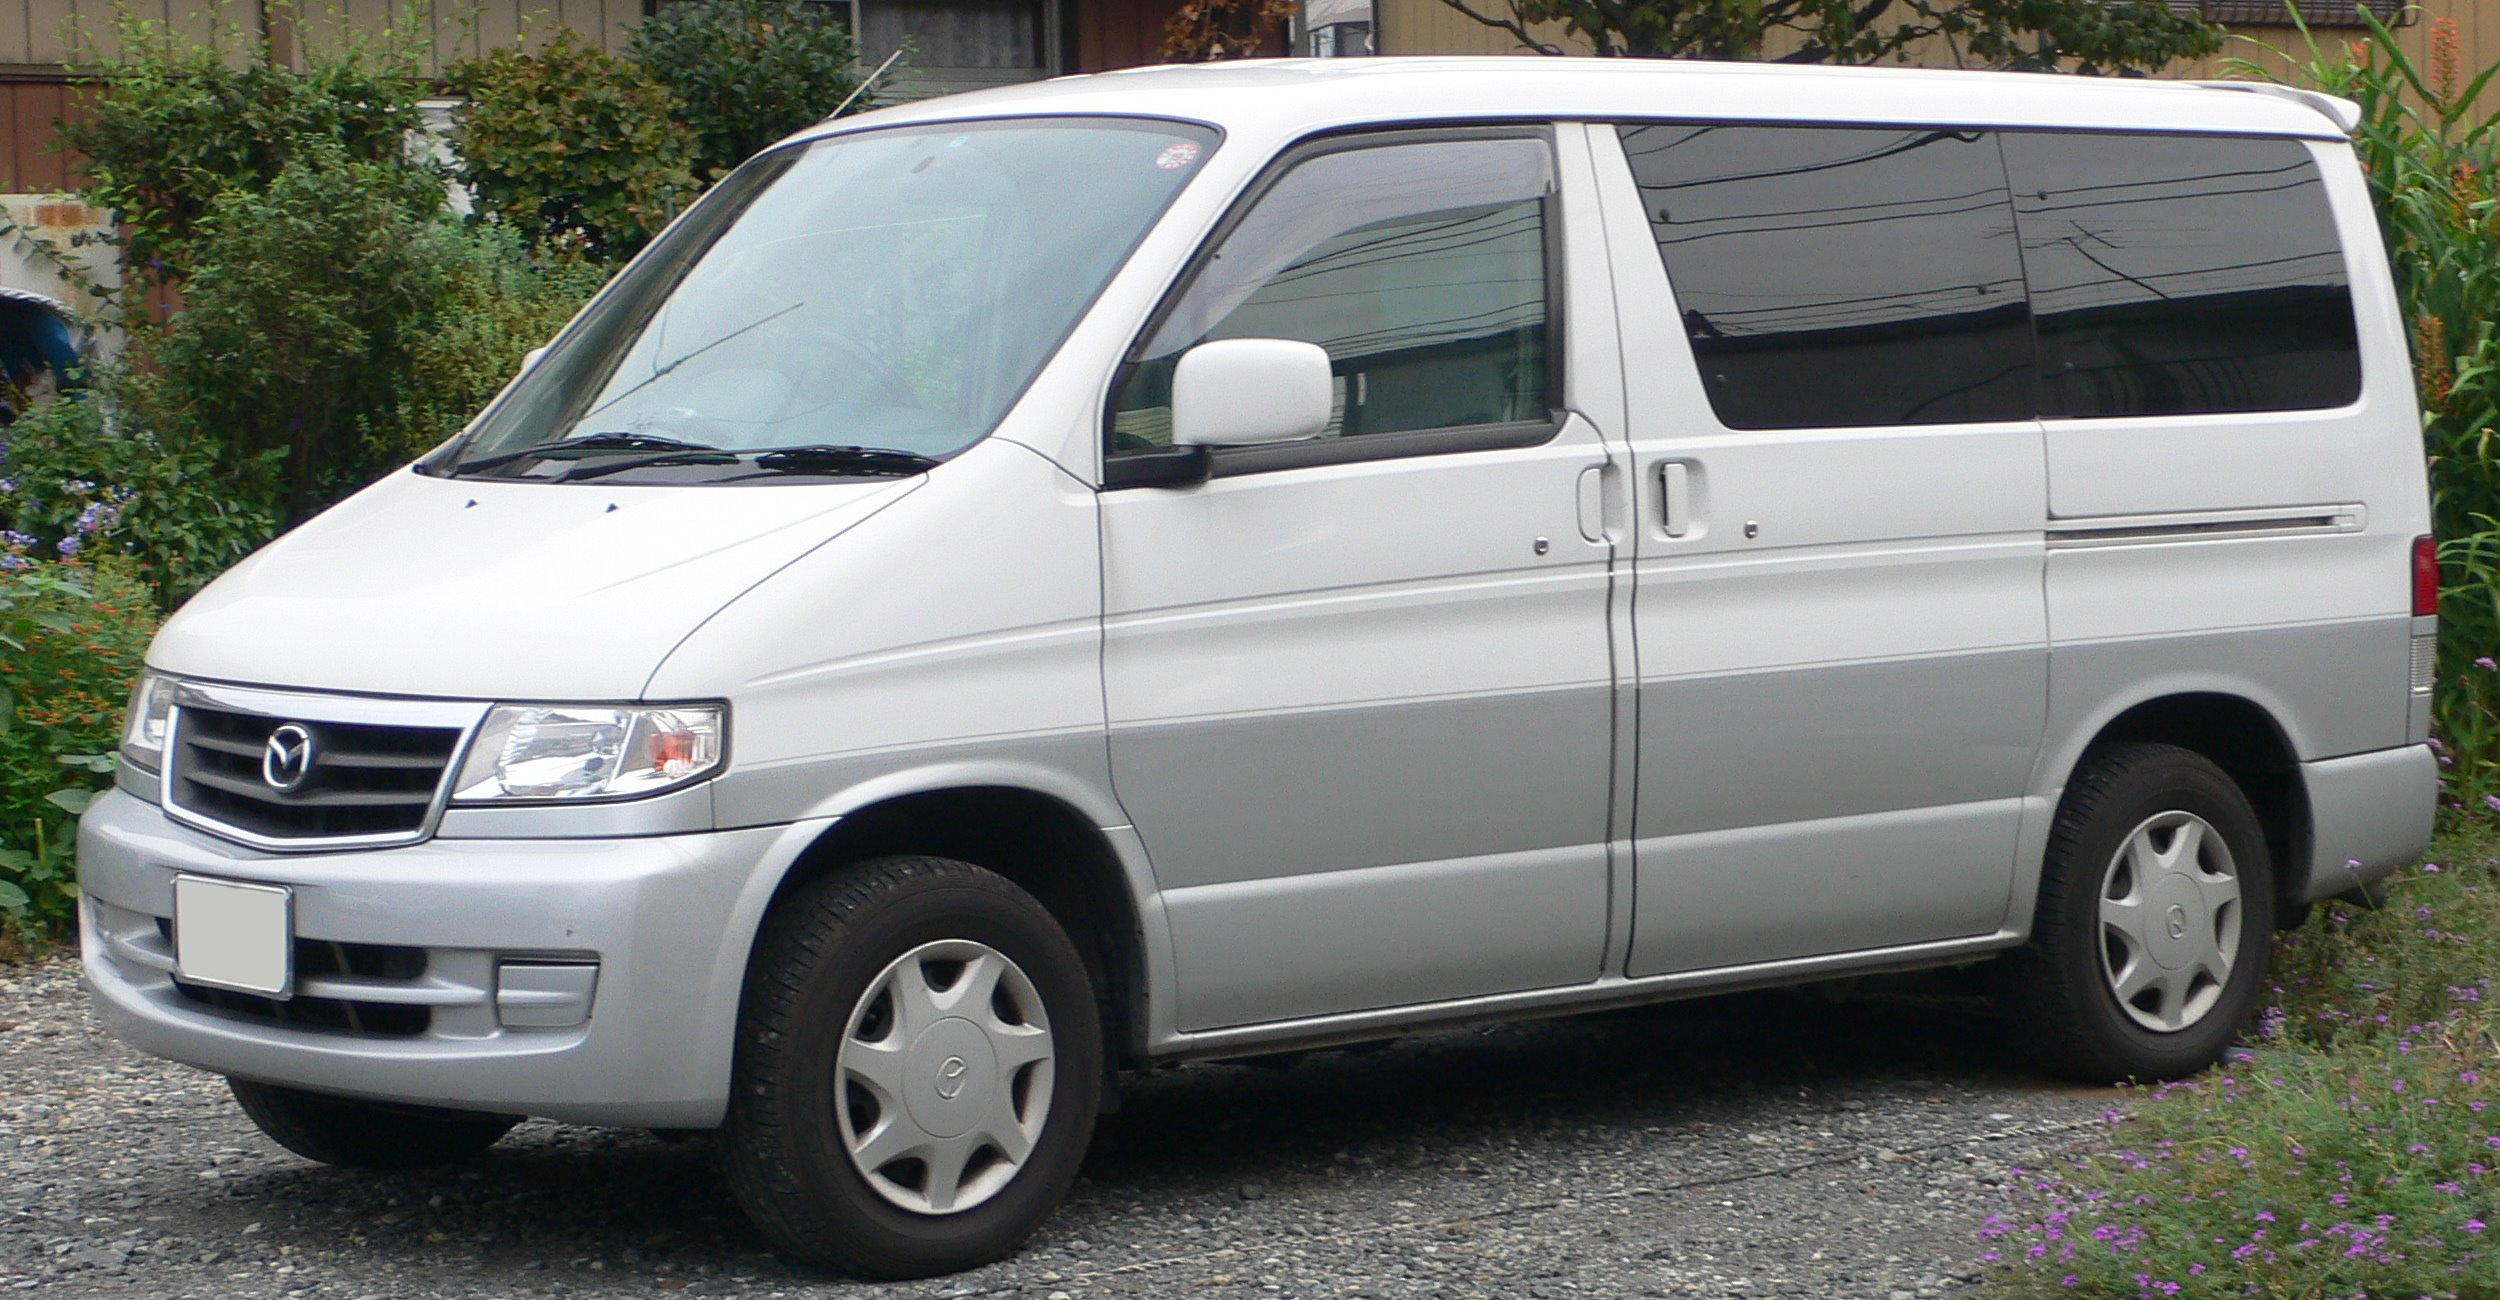 Mazda bongo 1998 photo - 2